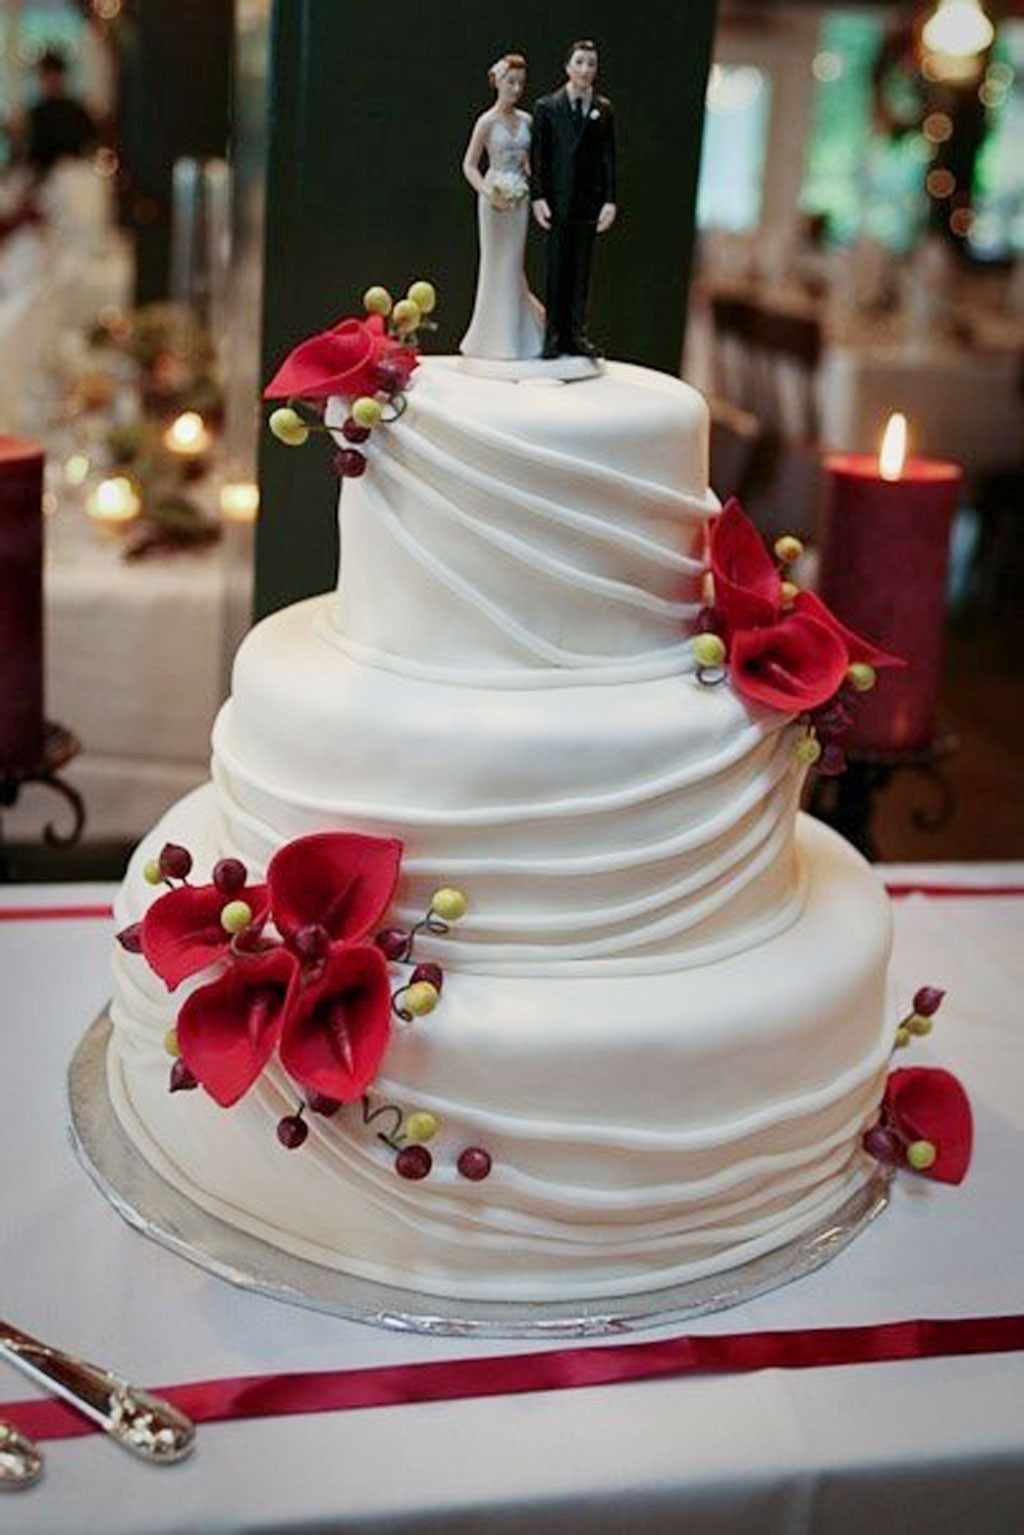 Wedding Cakes Designs Pictures  Red Calla Lily Wedding Cake Design 2 Wedding Cake Cake